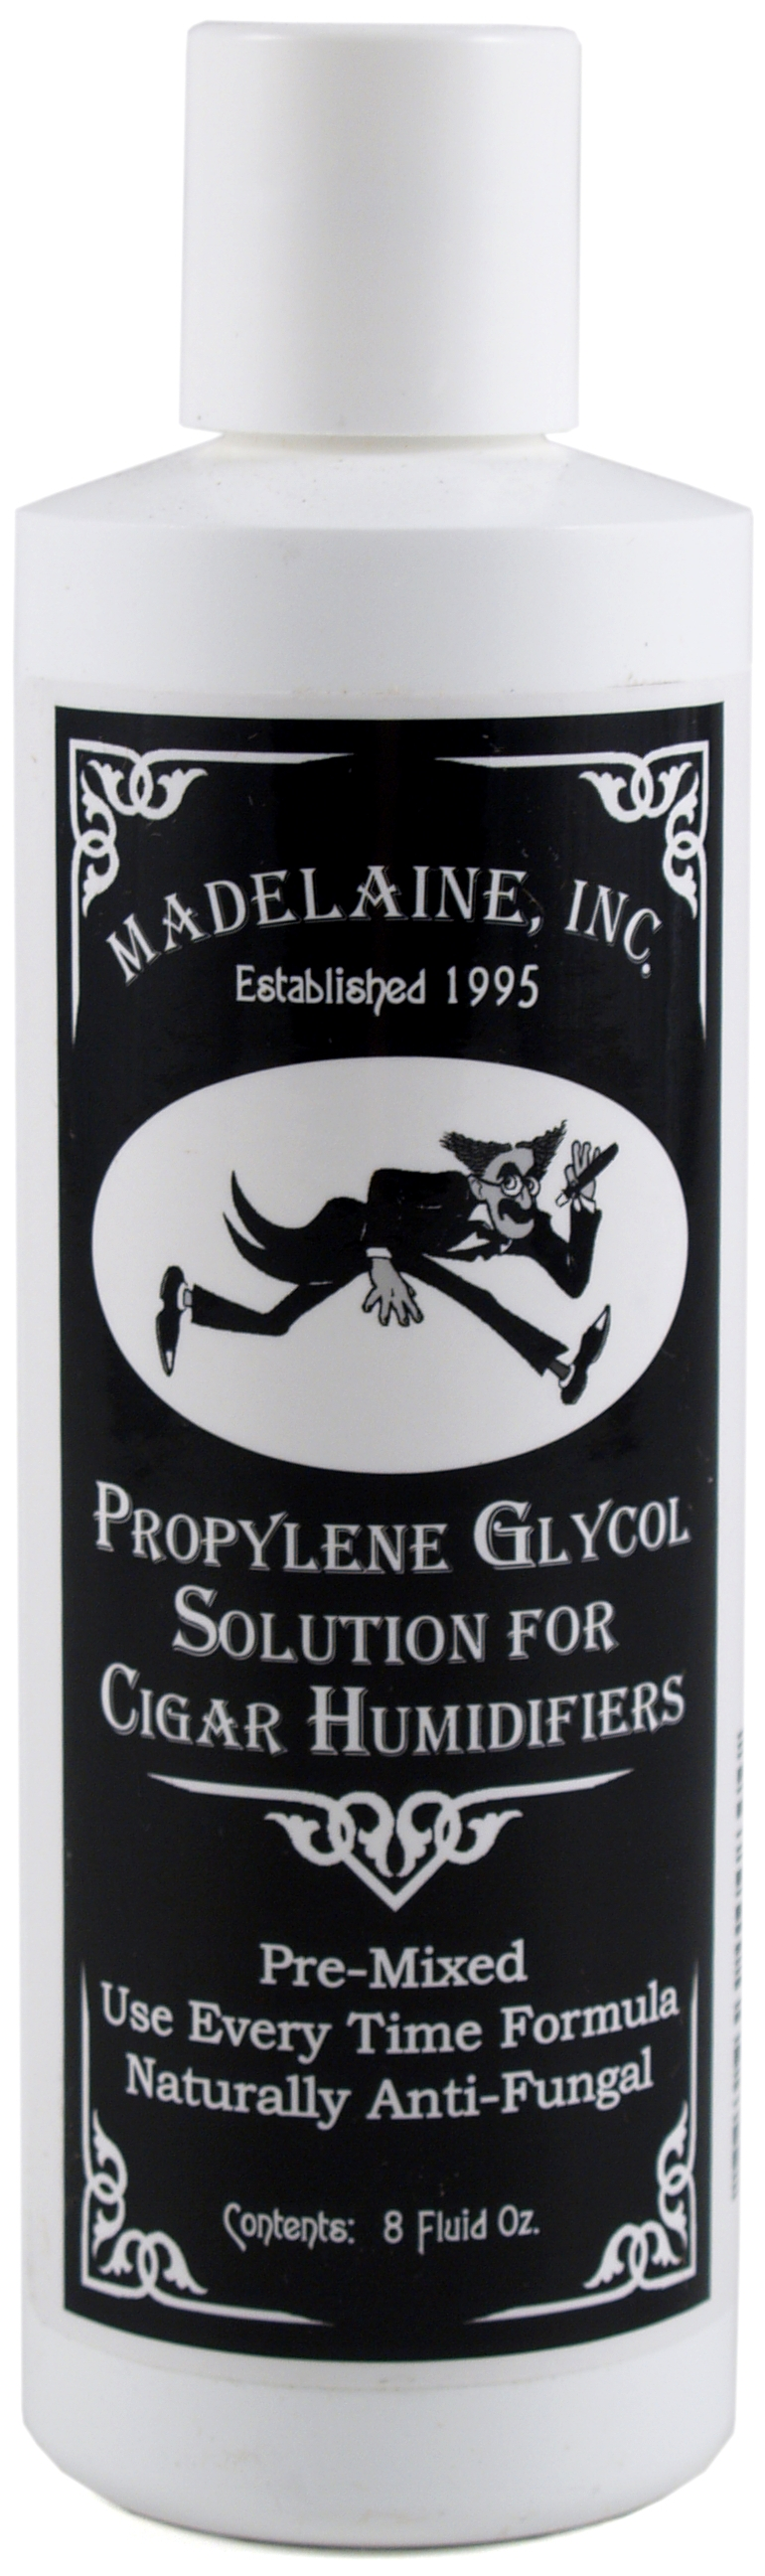 Madelaine 8 Ounce Premixed Propylene Glycol Cigar Humidifier Solution